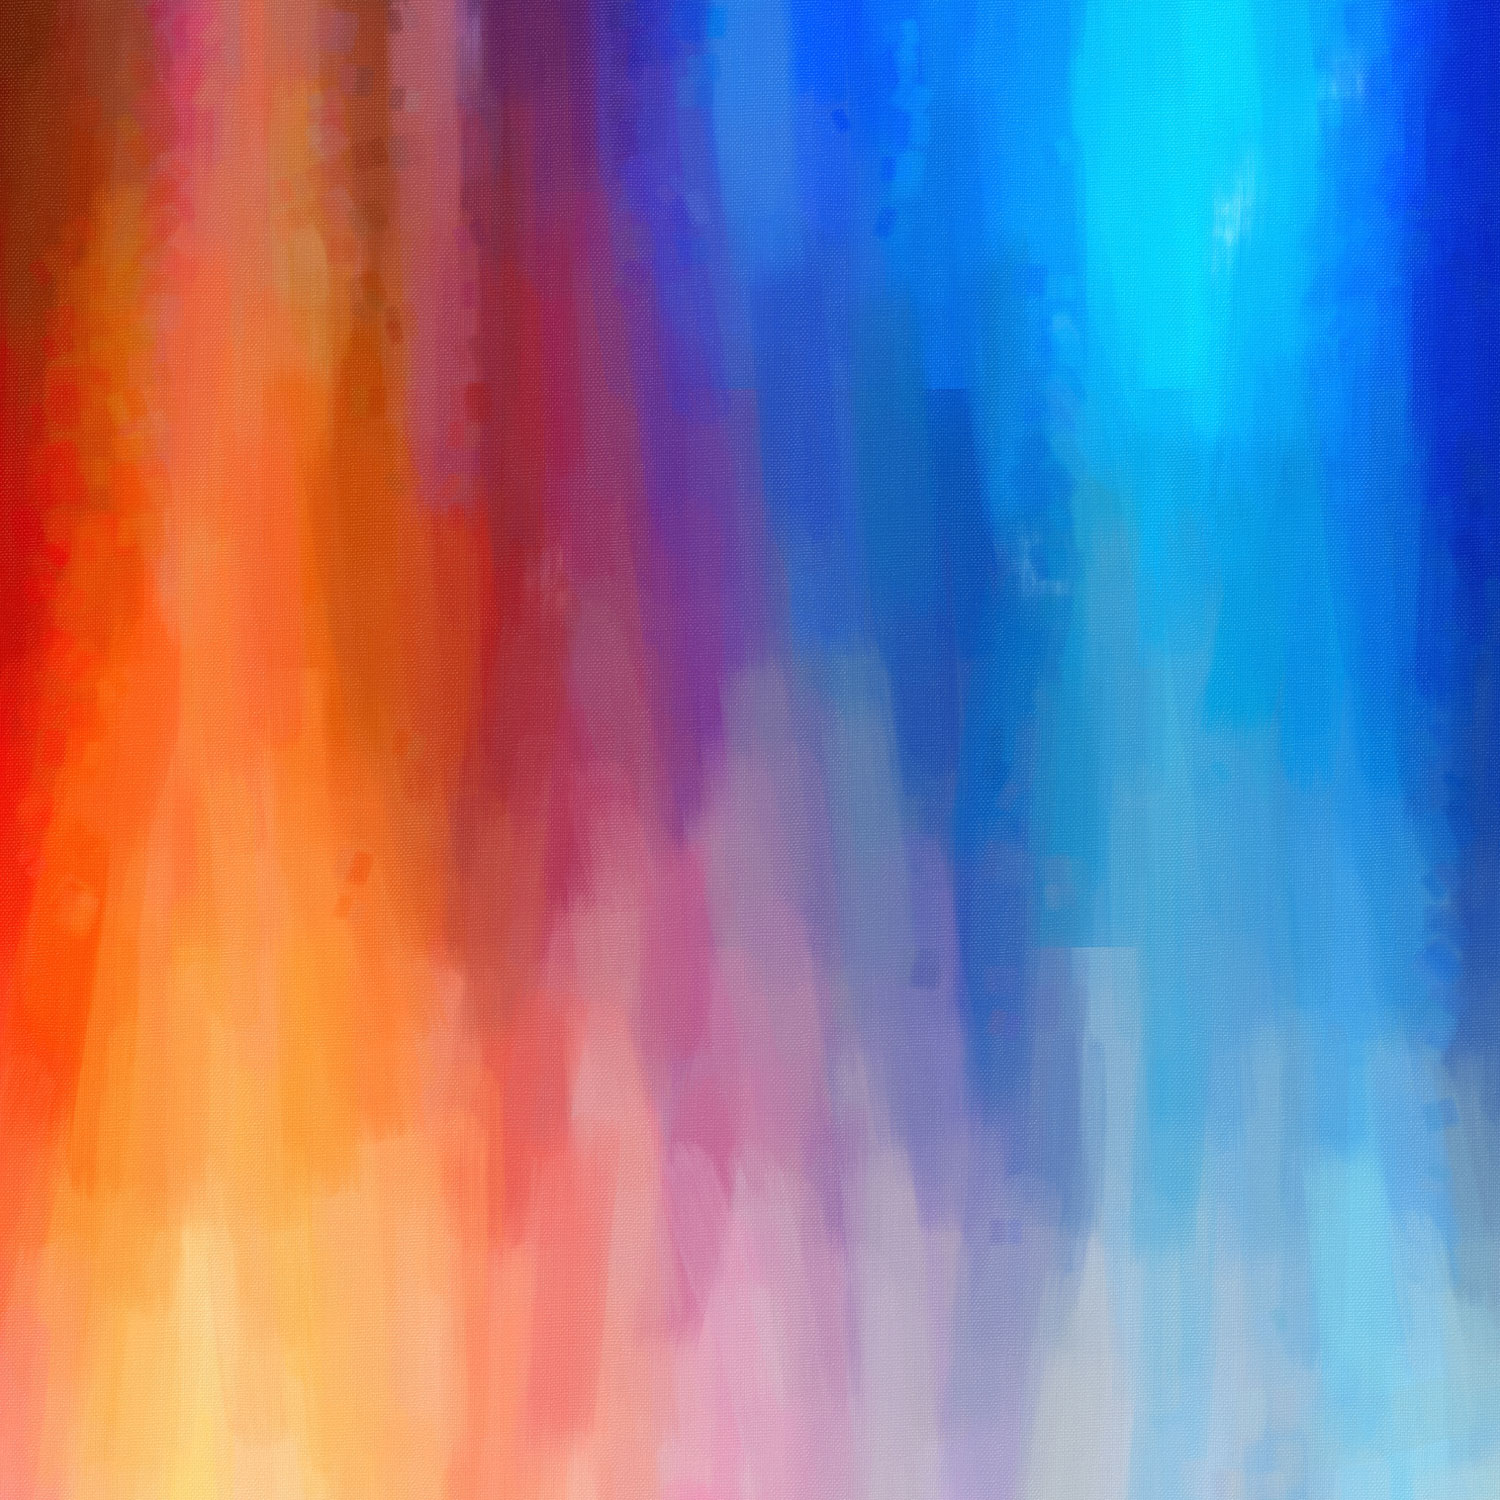 Blue And Red Mix - Blue Red Mix Background - 1500x1500 Wallpaper - Teahub.io